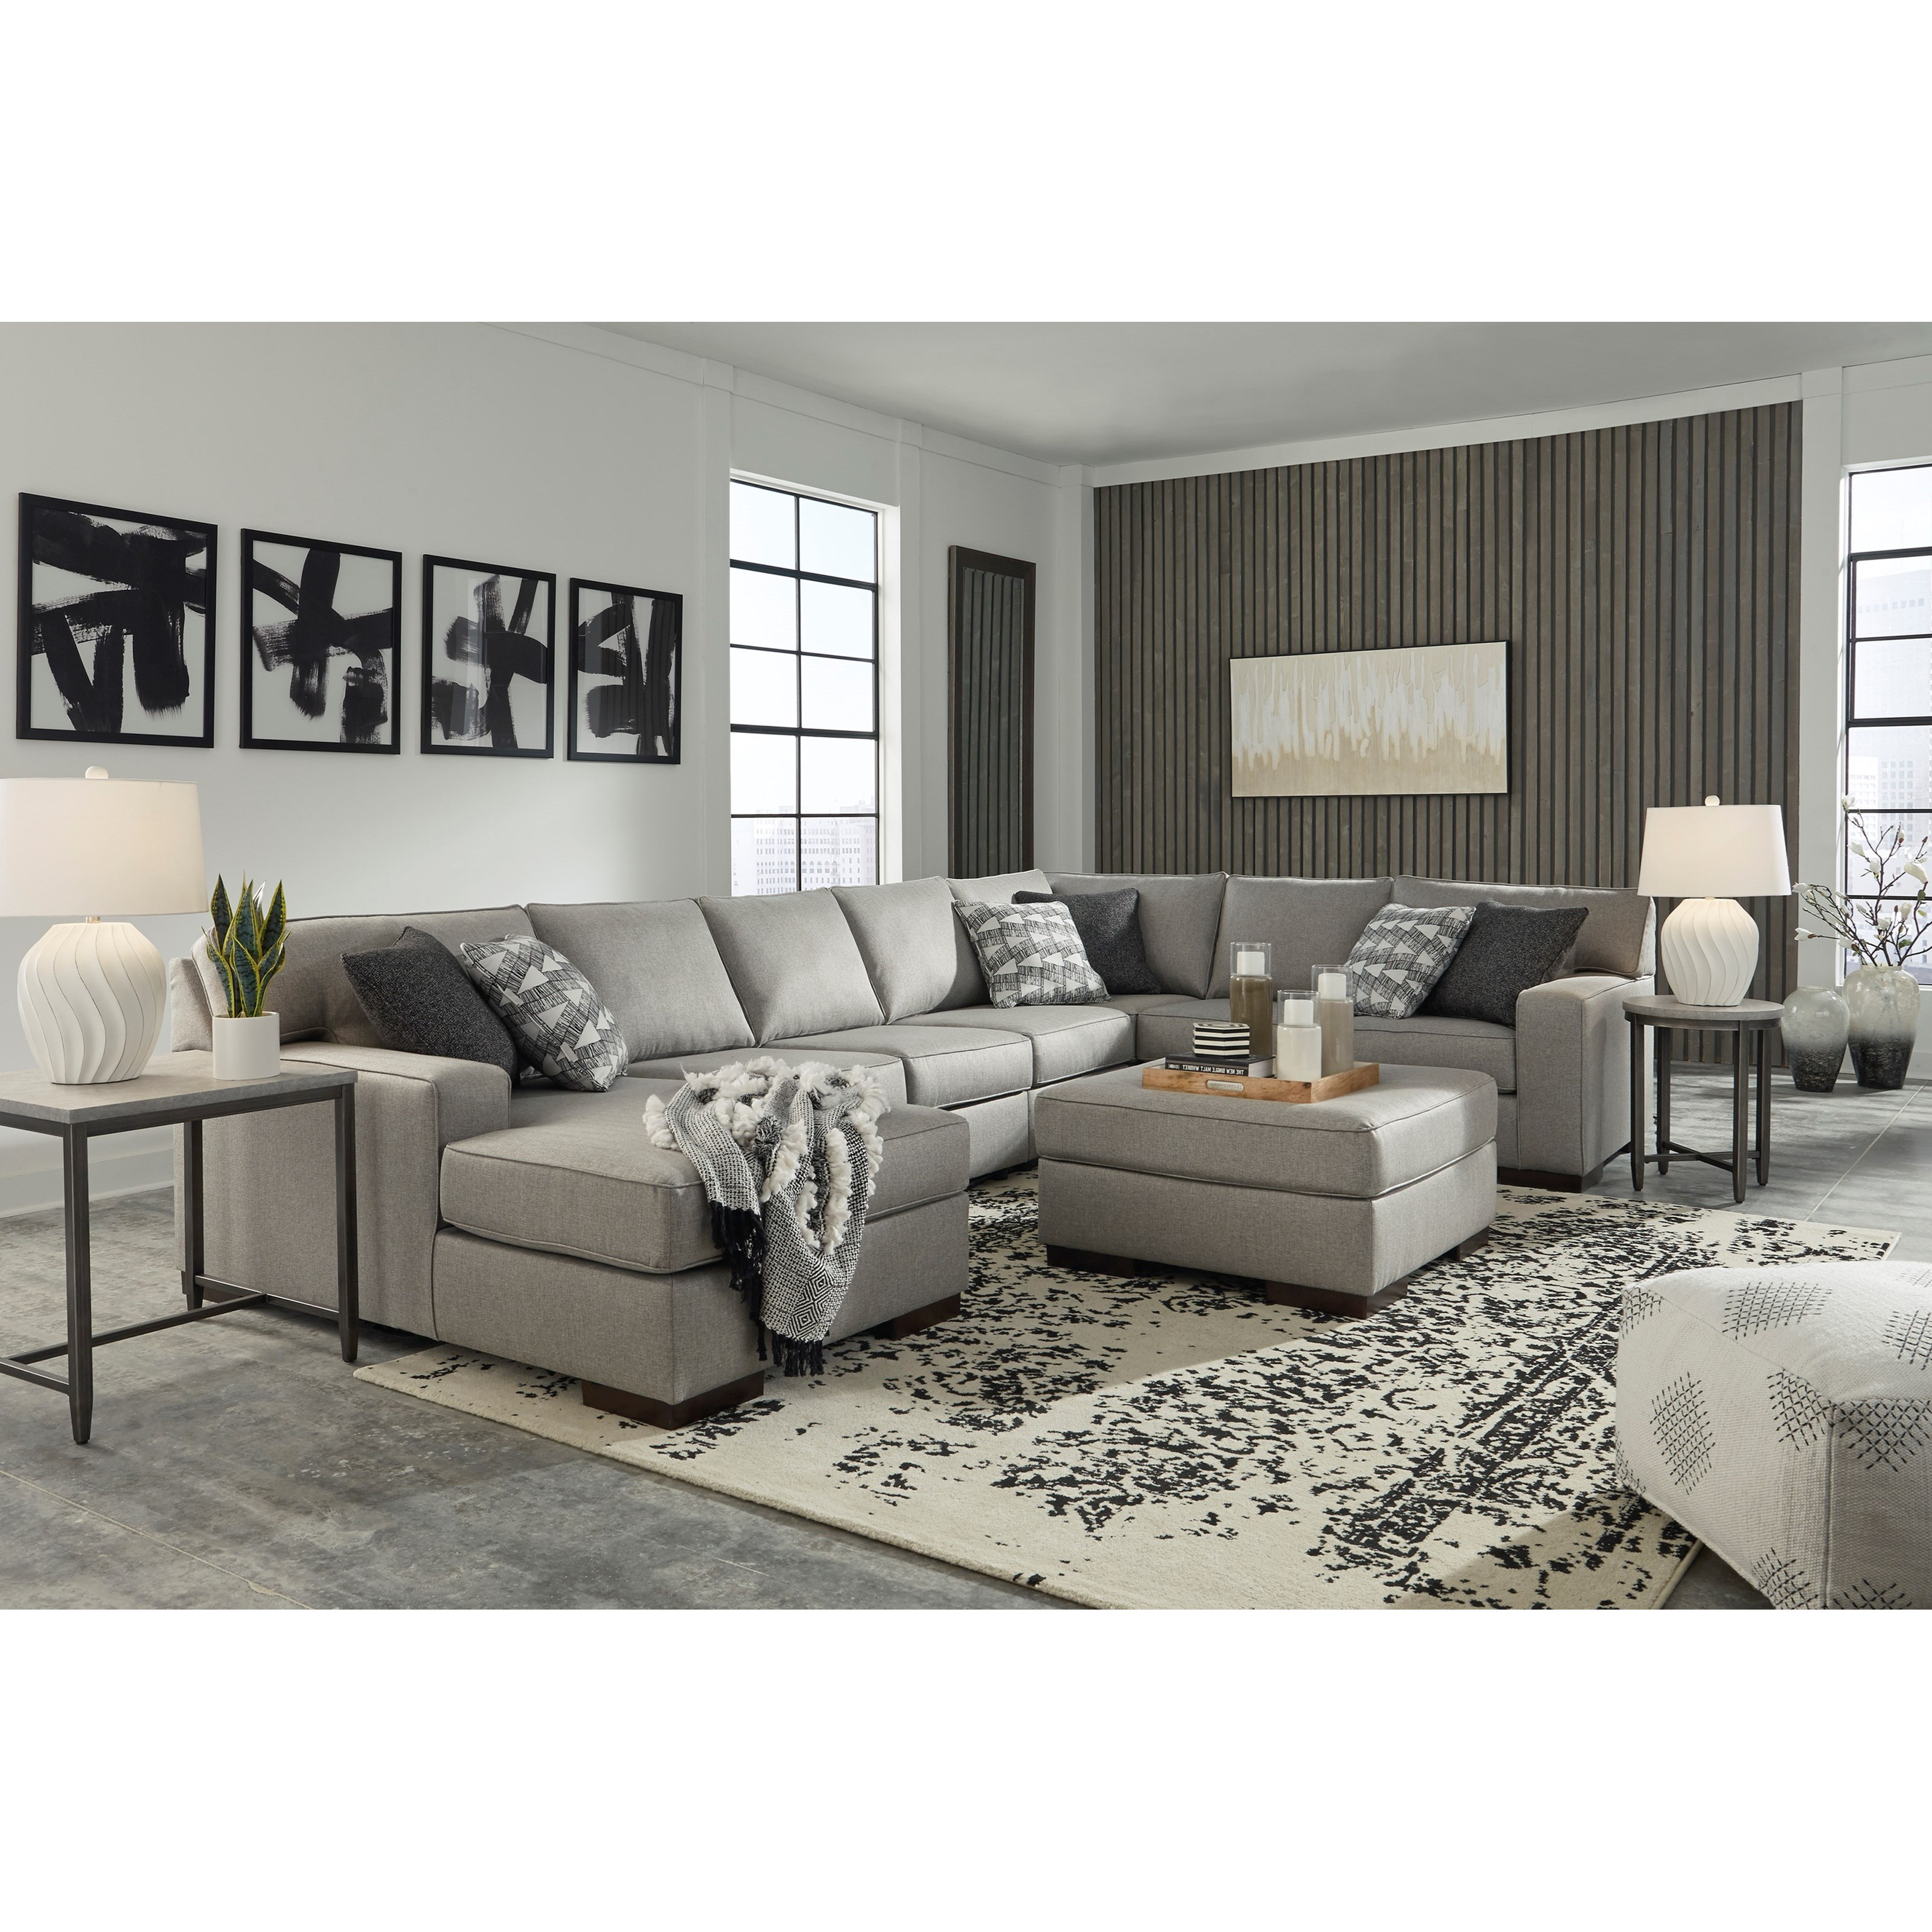 Marsing Nuvella Living Room Group by Benchcraft at Northeast Factory Direct